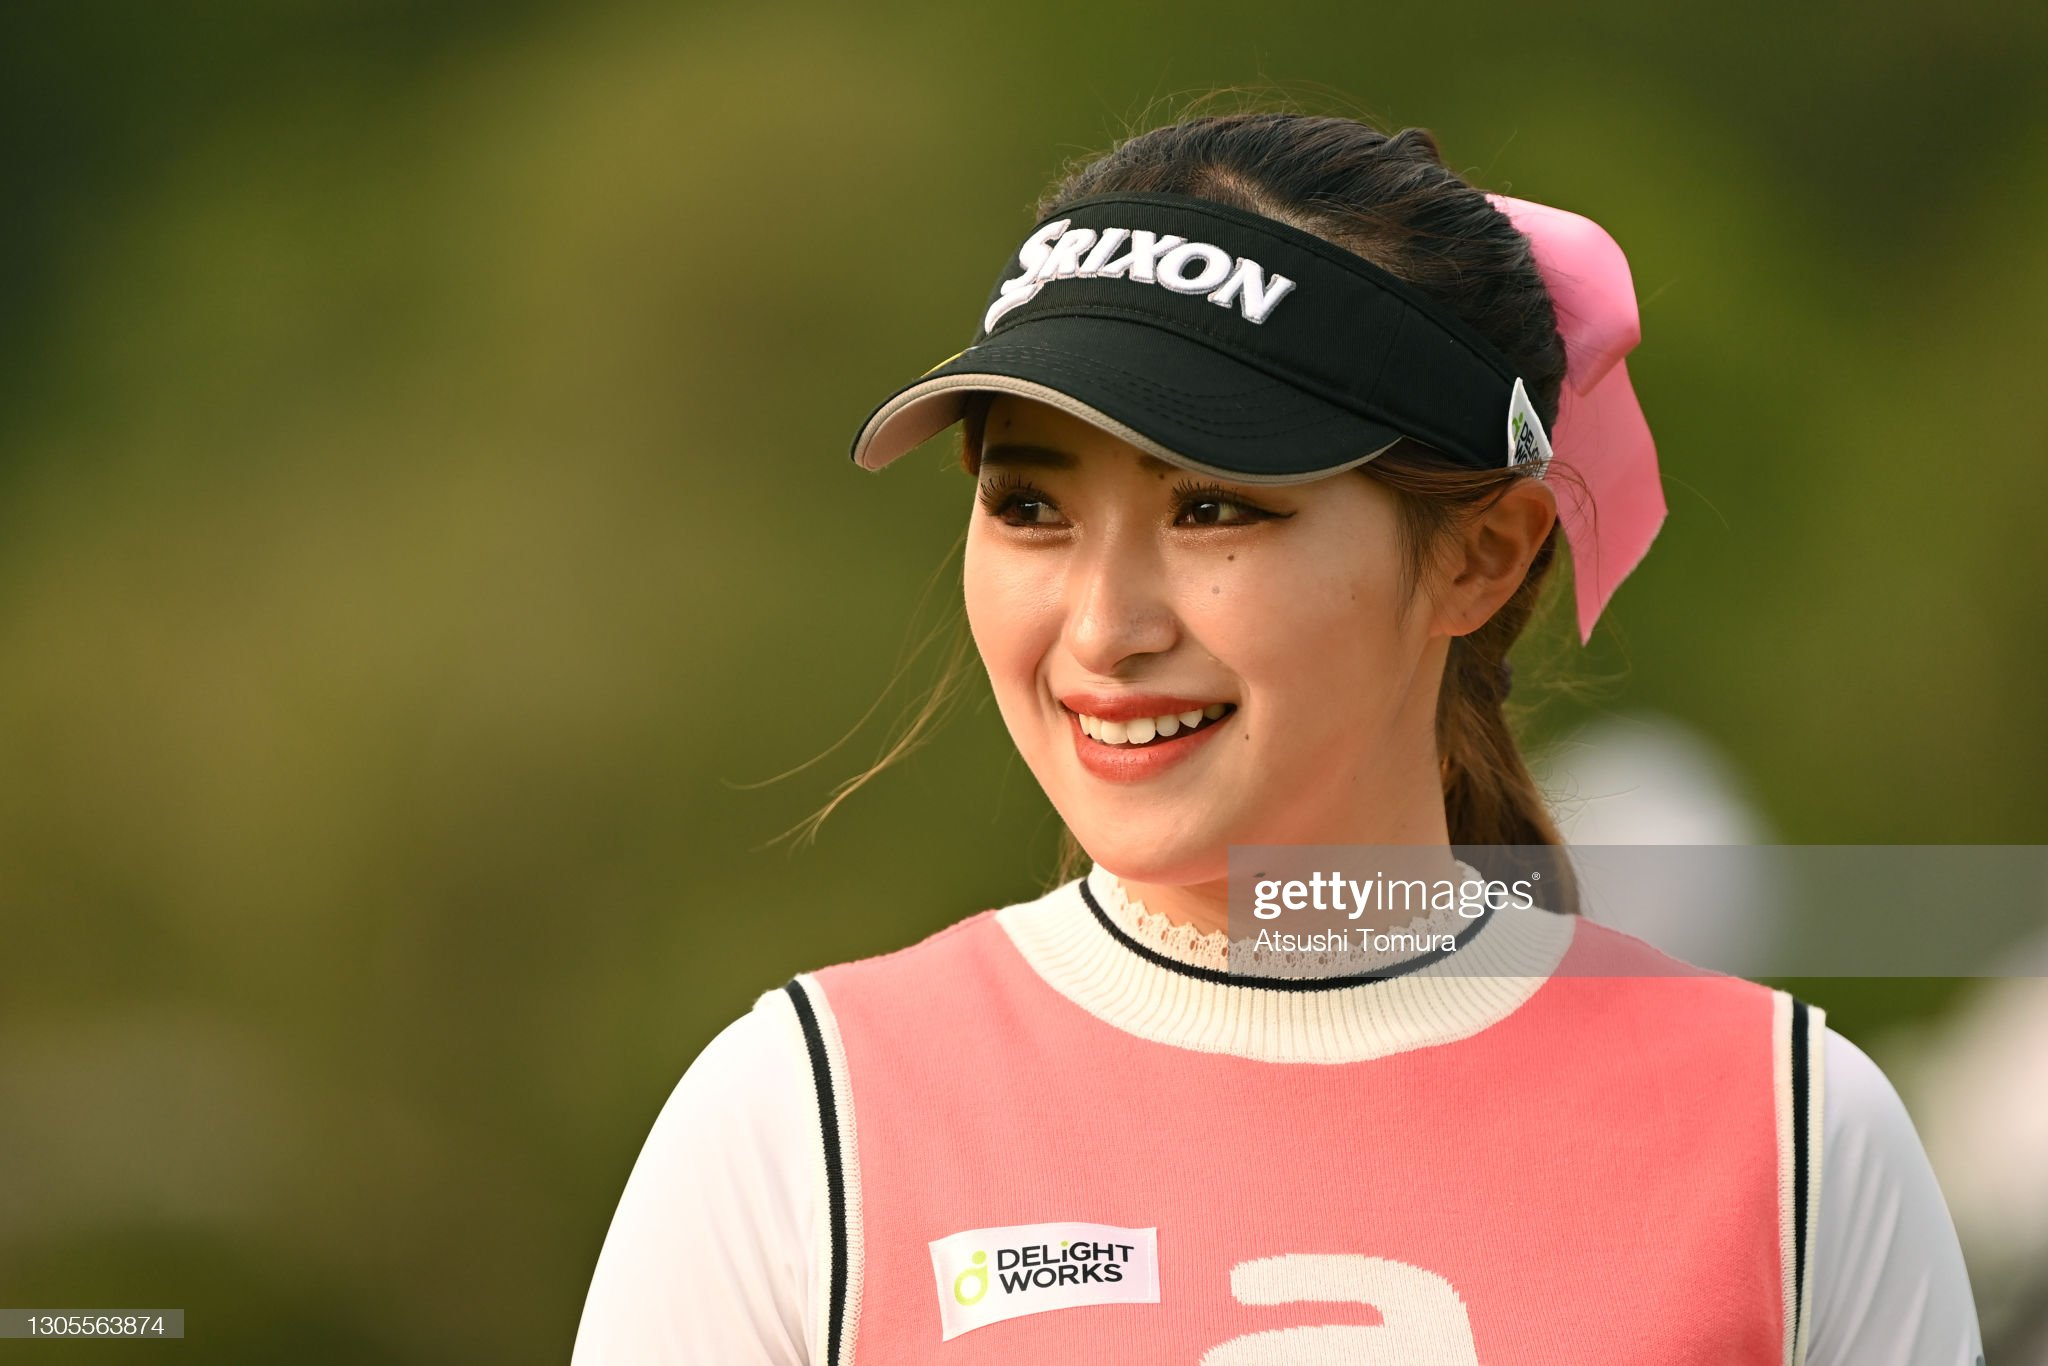 https://media.gettyimages.com/photos/reika-usui-of-japan-is-seen-on-the-1st-hole-during-the-third-round-of-picture-id1305563874?s=2048x2048